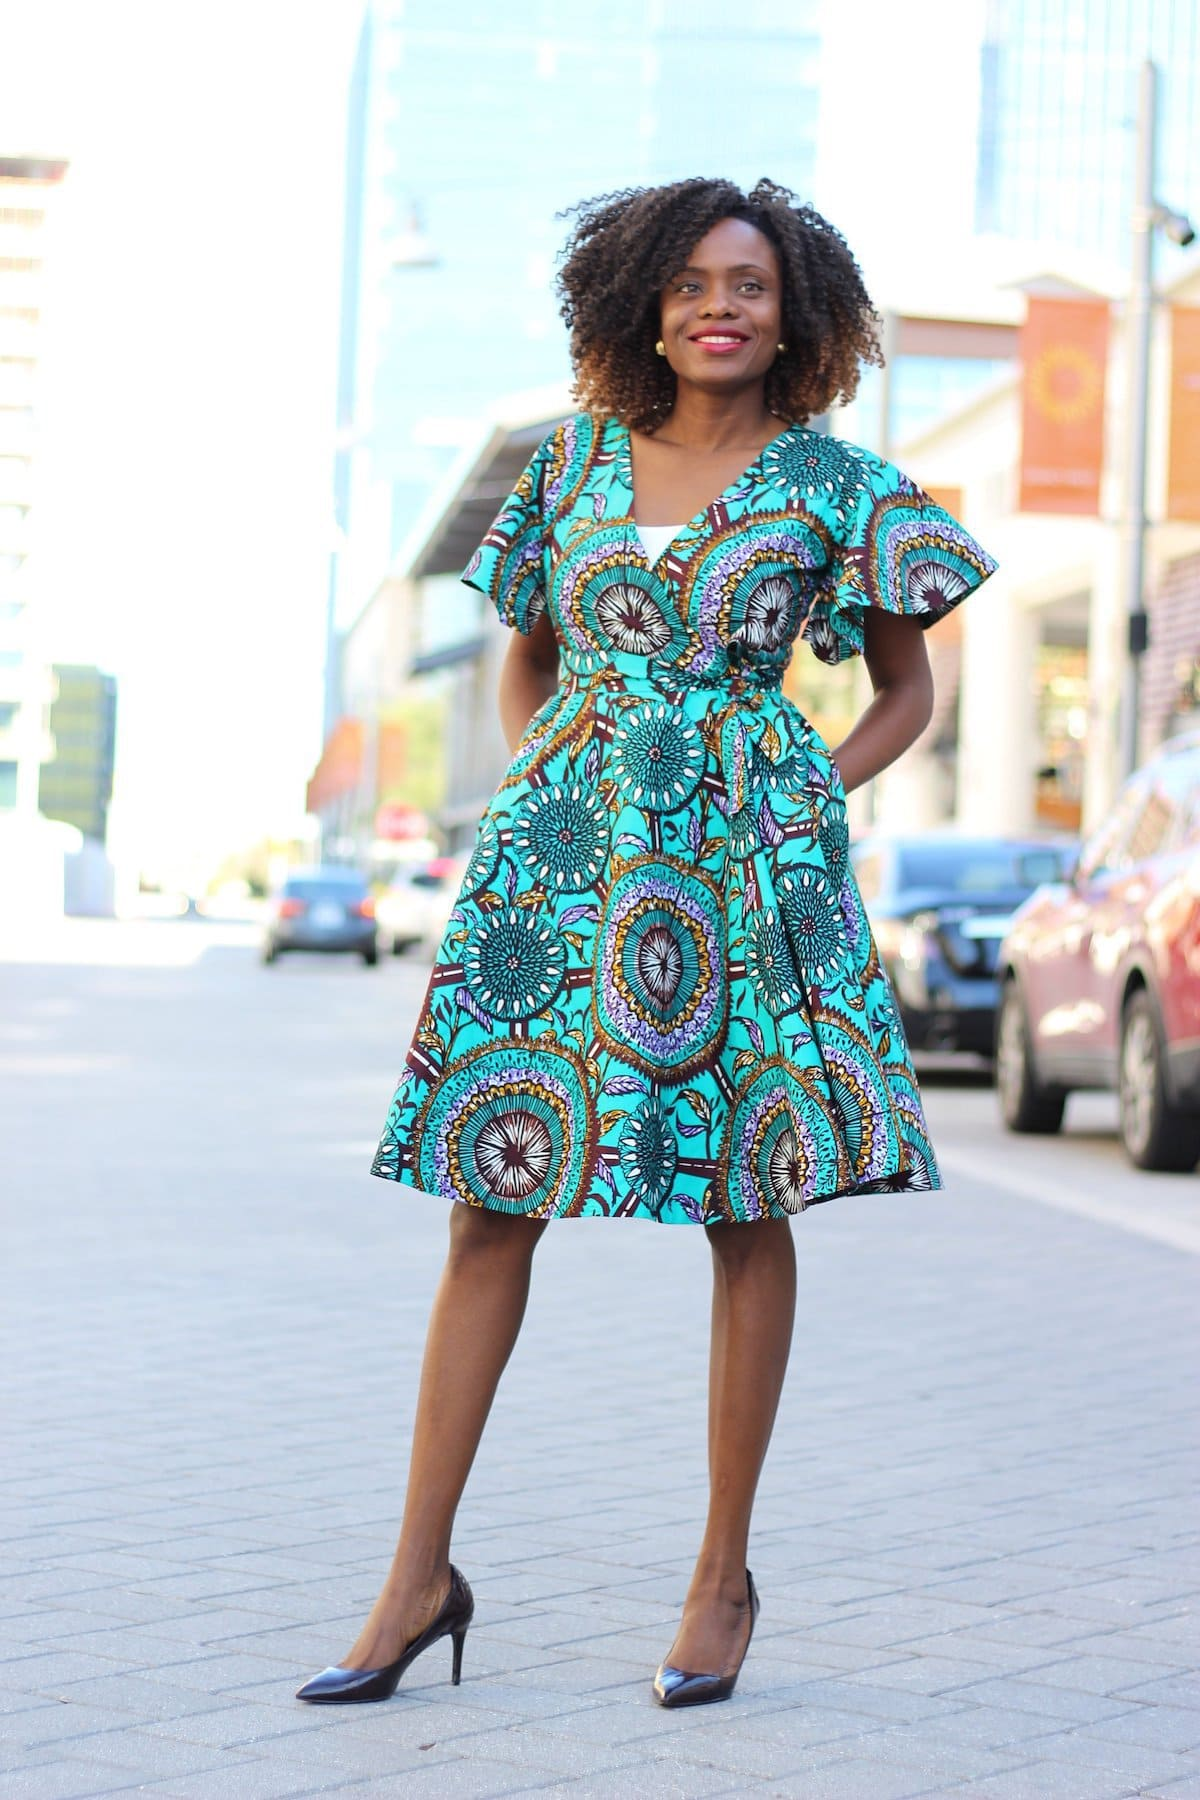 A roundup of the best ankara dresses for women.Wrap dresses are, by nature, flattering and form fitting while also having a flowing, casual appeal about them. The Cecey Wrap Dress is a shining example. Featuring loose flounce sleeves, the dress is fully lined and has been handmade to ensure its superb quality.